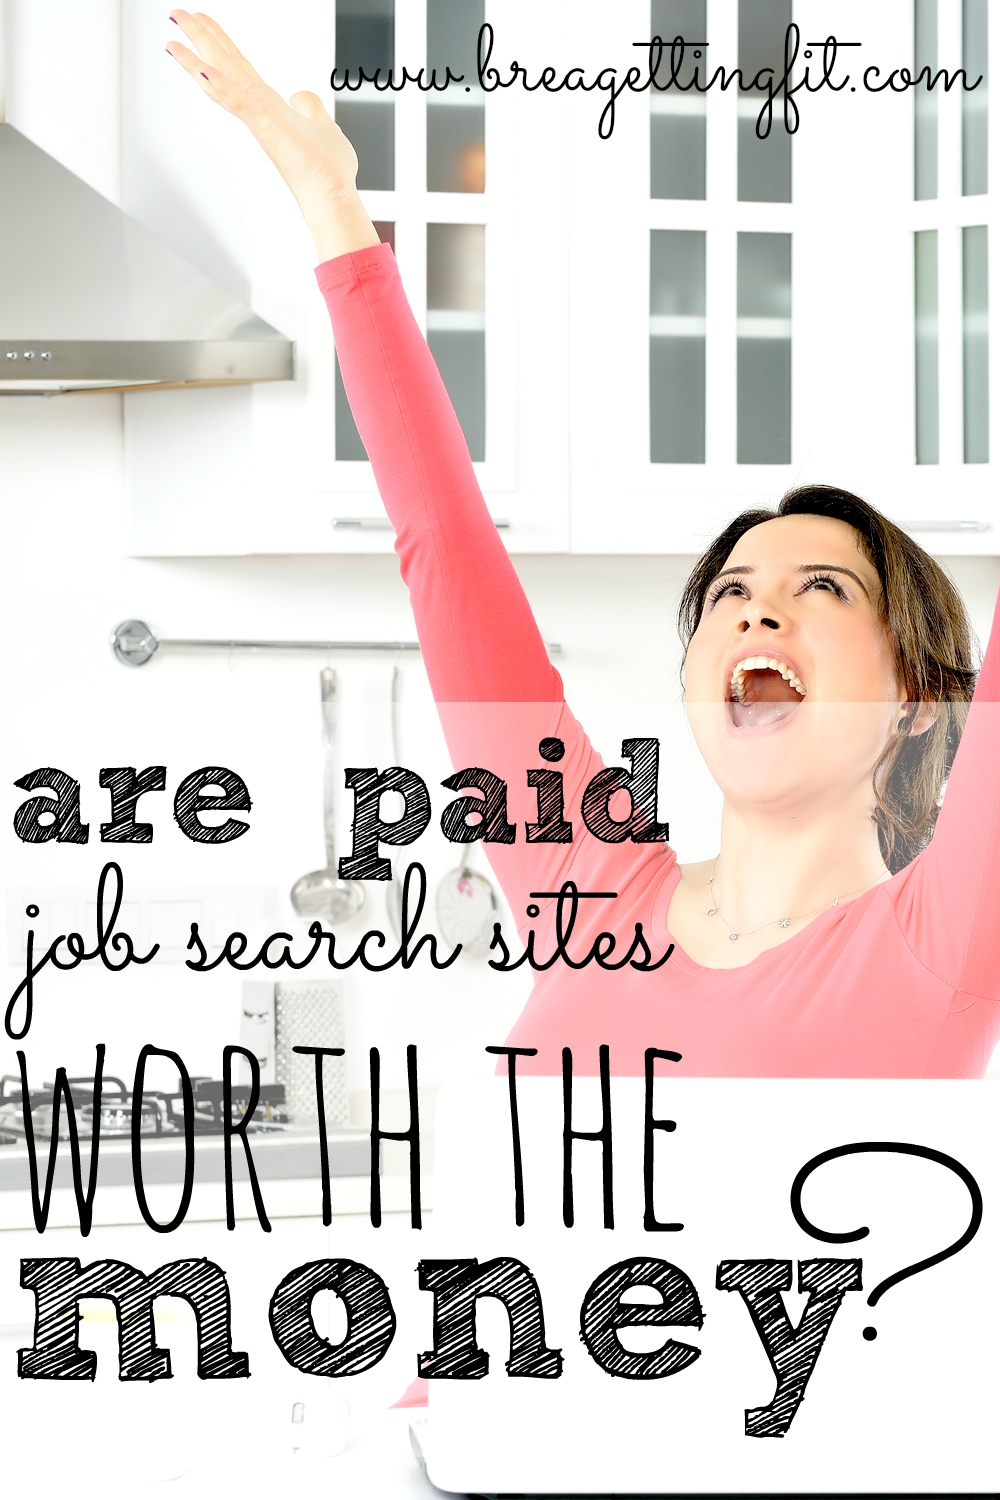 Looking for a work from home job? Find out what I have to say about paid job sites.